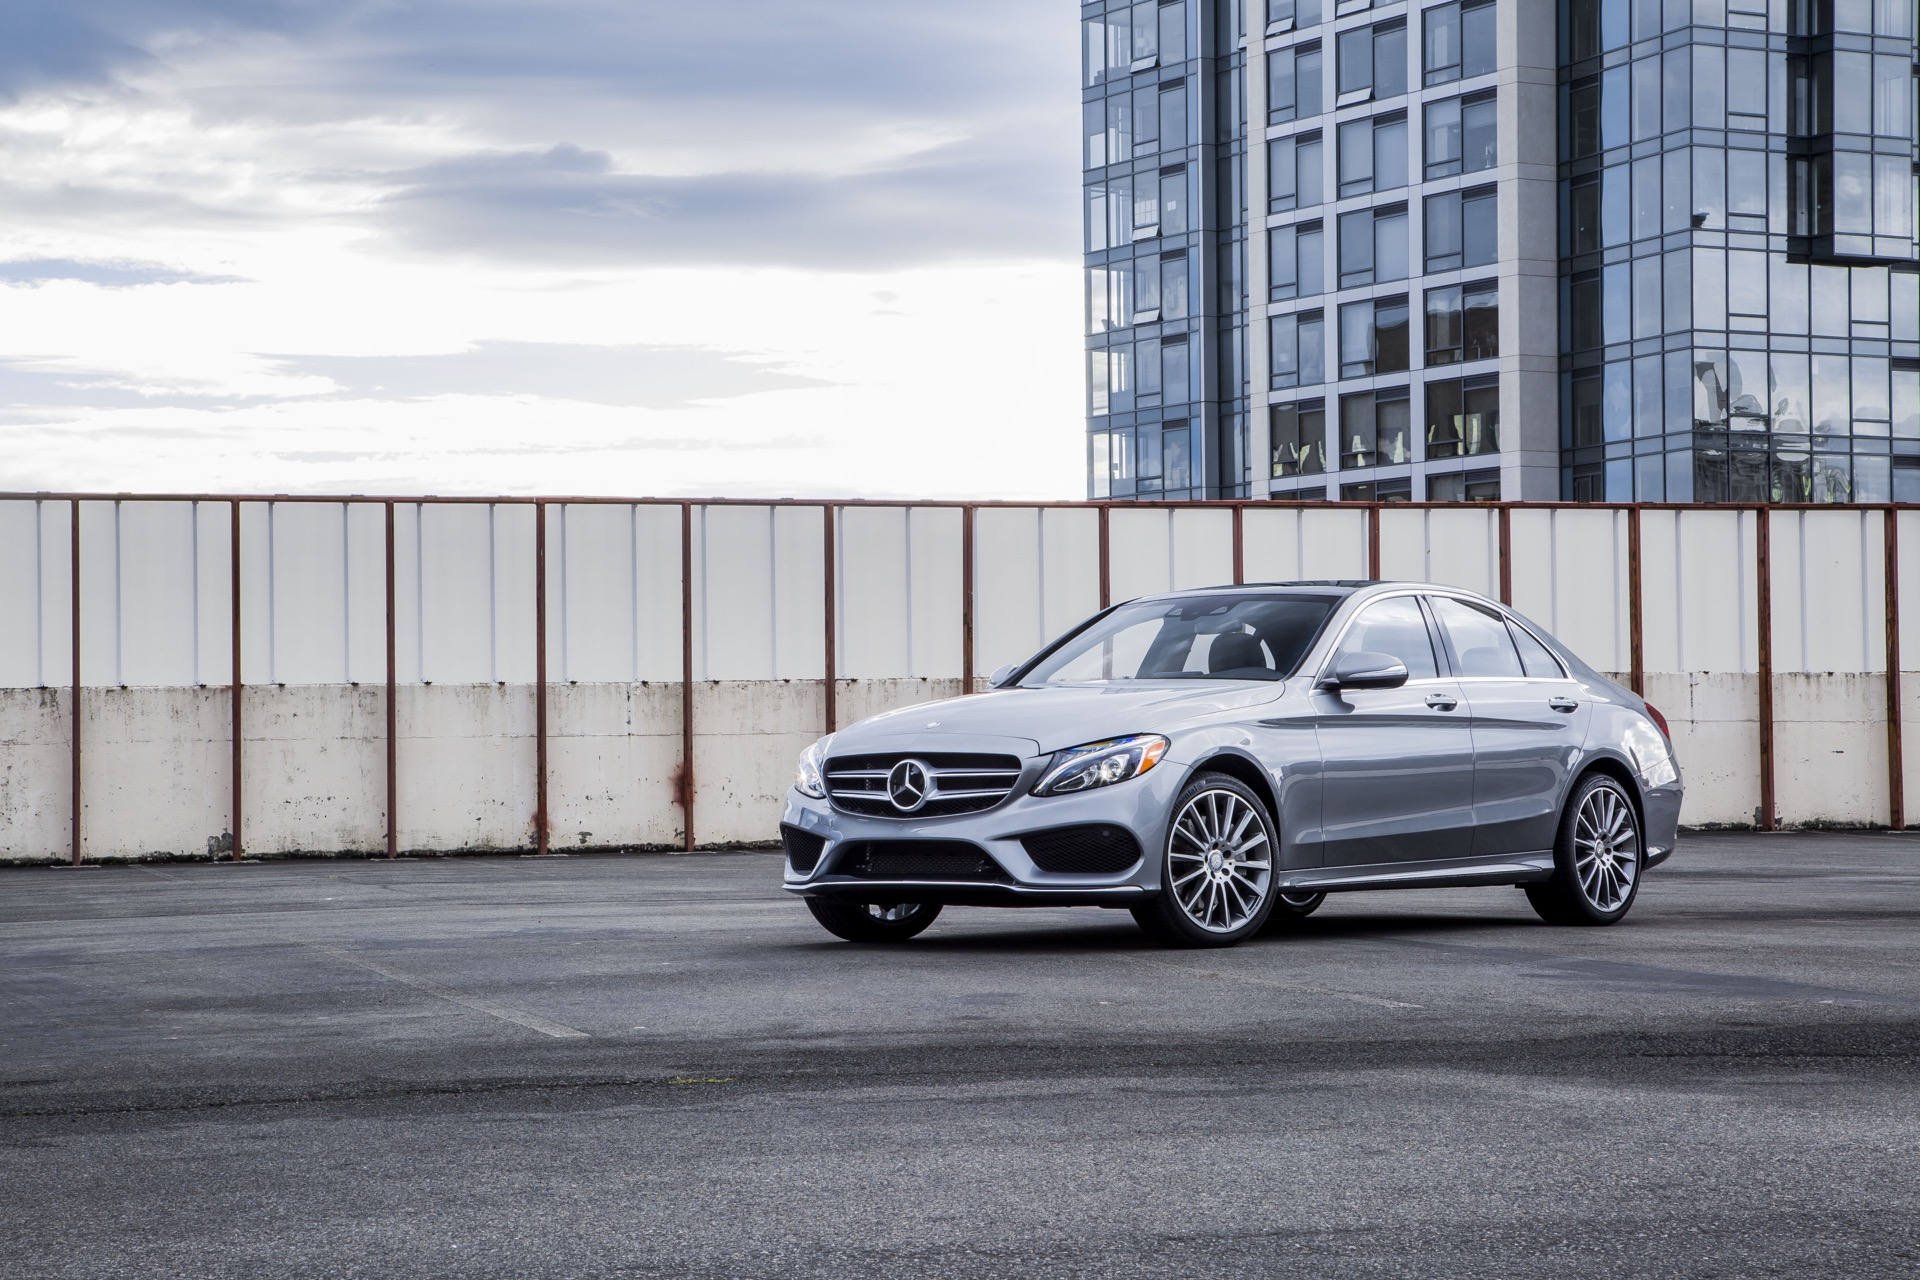 mercedes takes out 2015 world luxury and performance car of the year awards. Black Bedroom Furniture Sets. Home Design Ideas